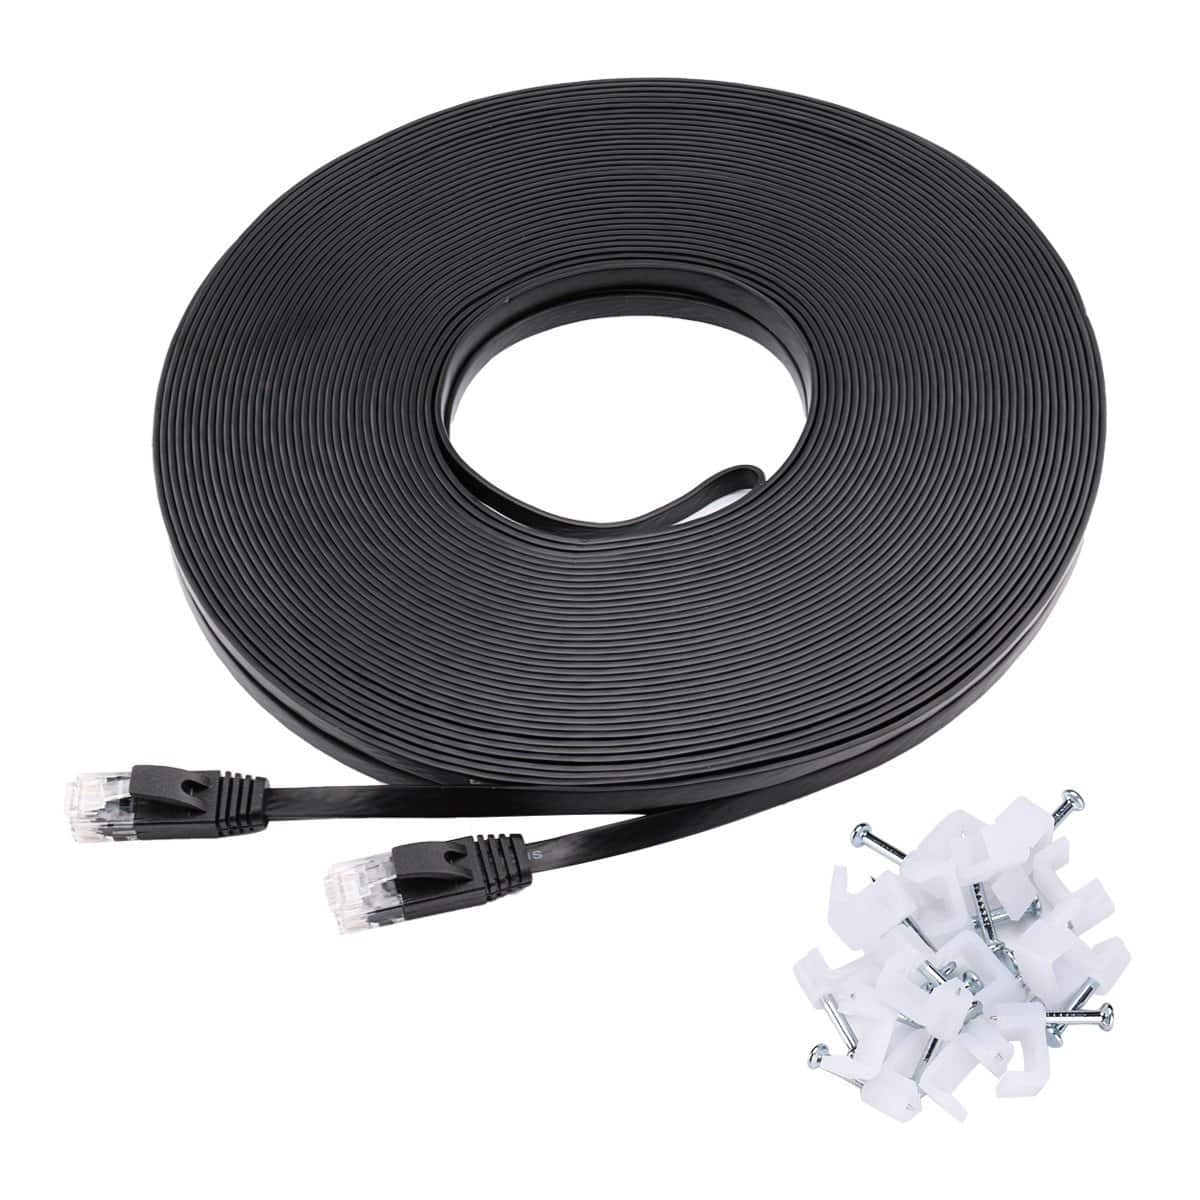 Cat6 Ethernet Cable Flat 100 ft w/ Clips $9 + FSSS